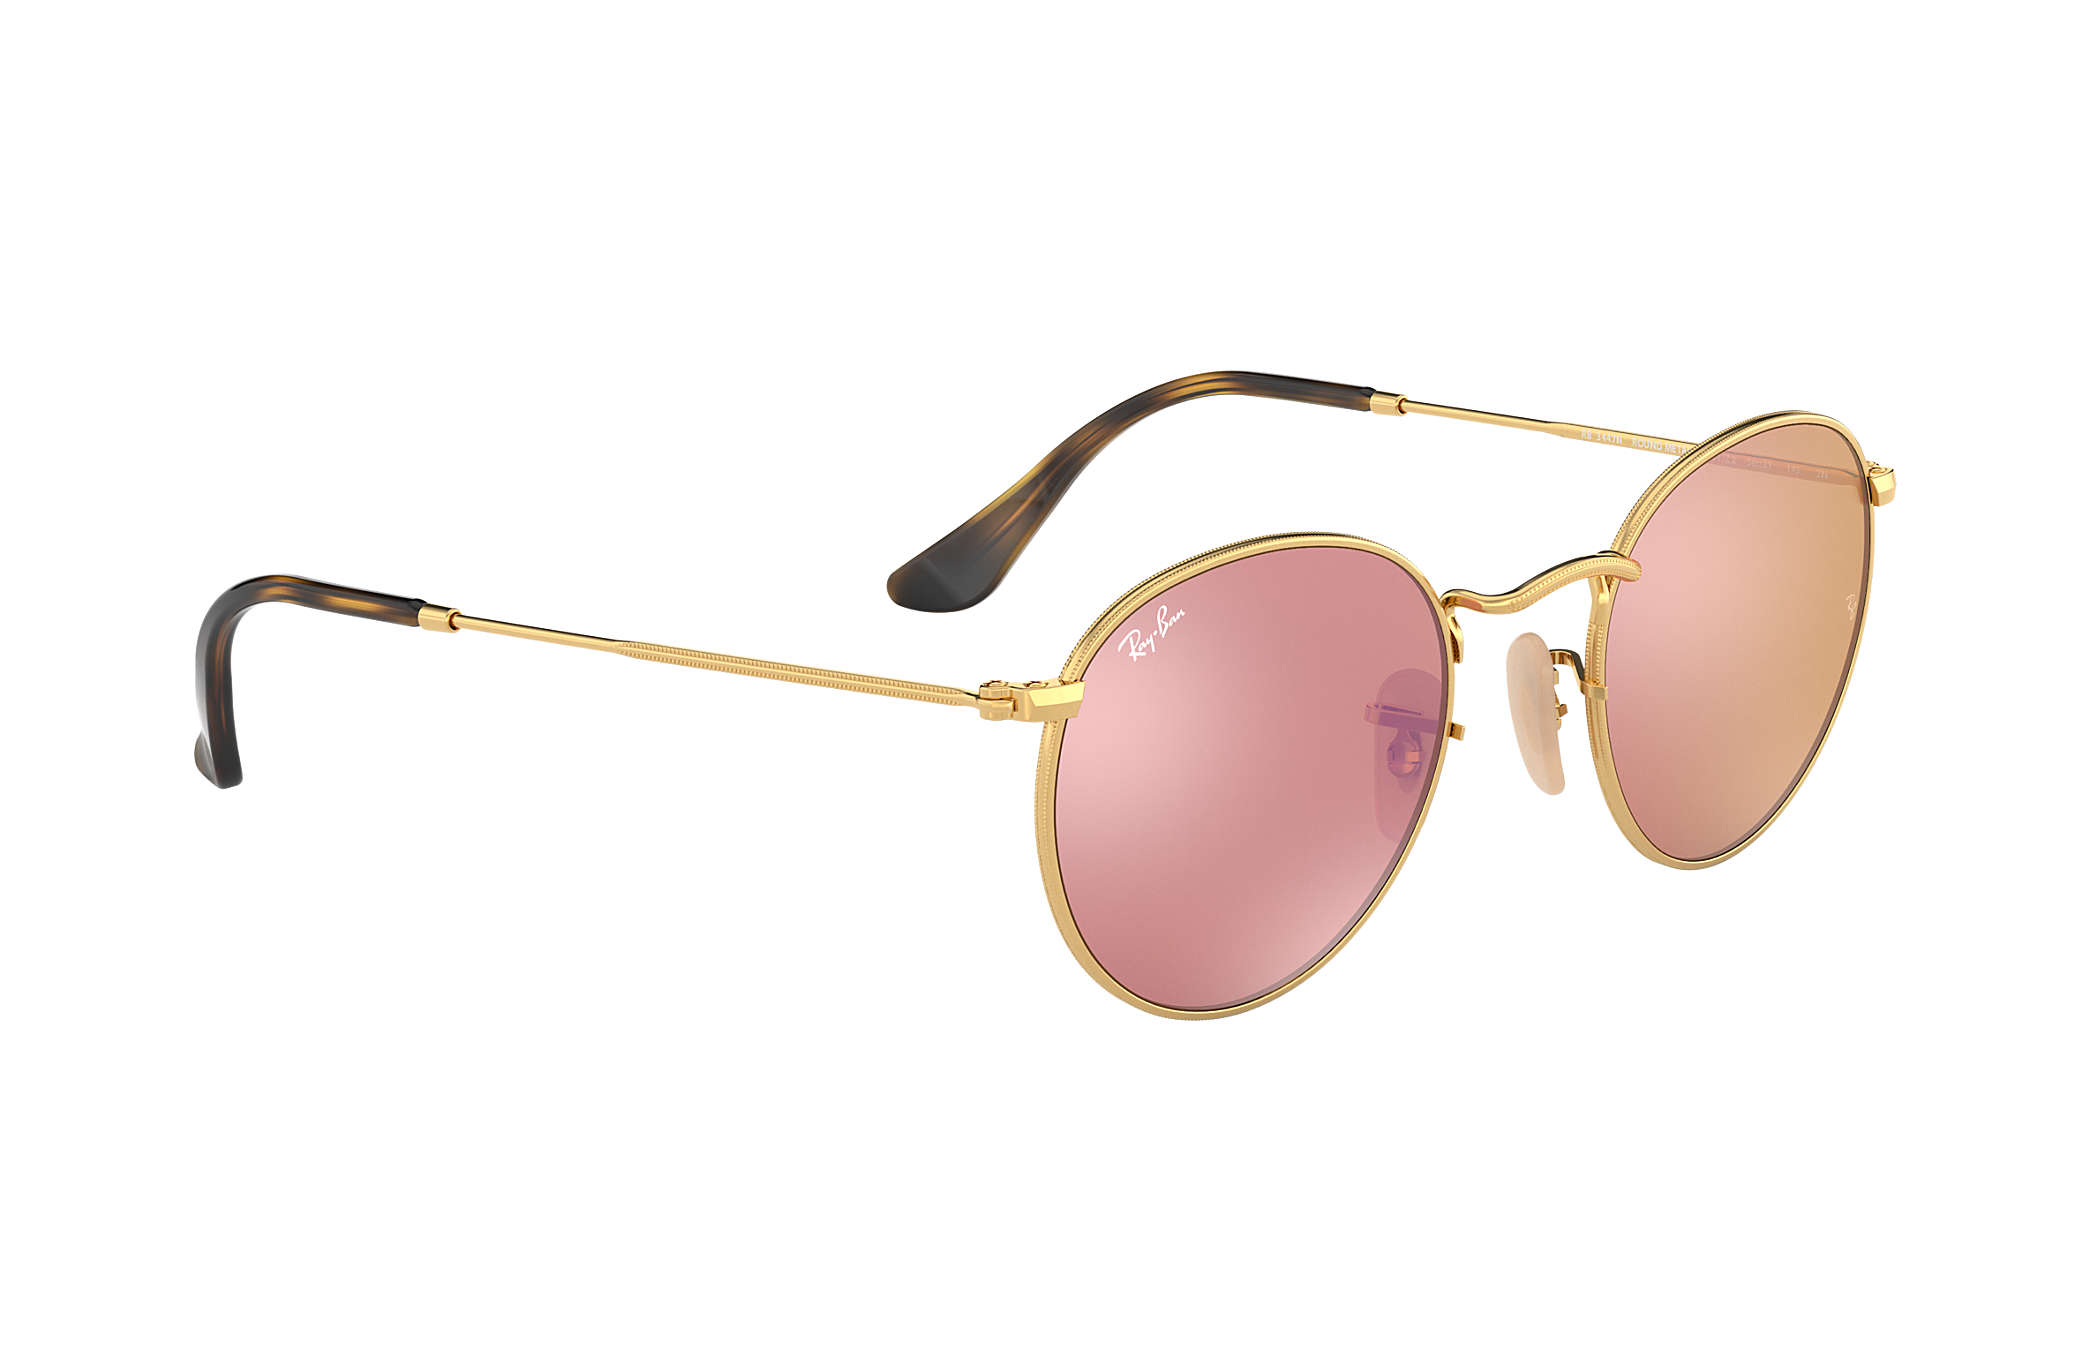 8667e29353a Ray-Ban Round Flat Lenses RB3447N Gold - Metal - Copper Lenses ...